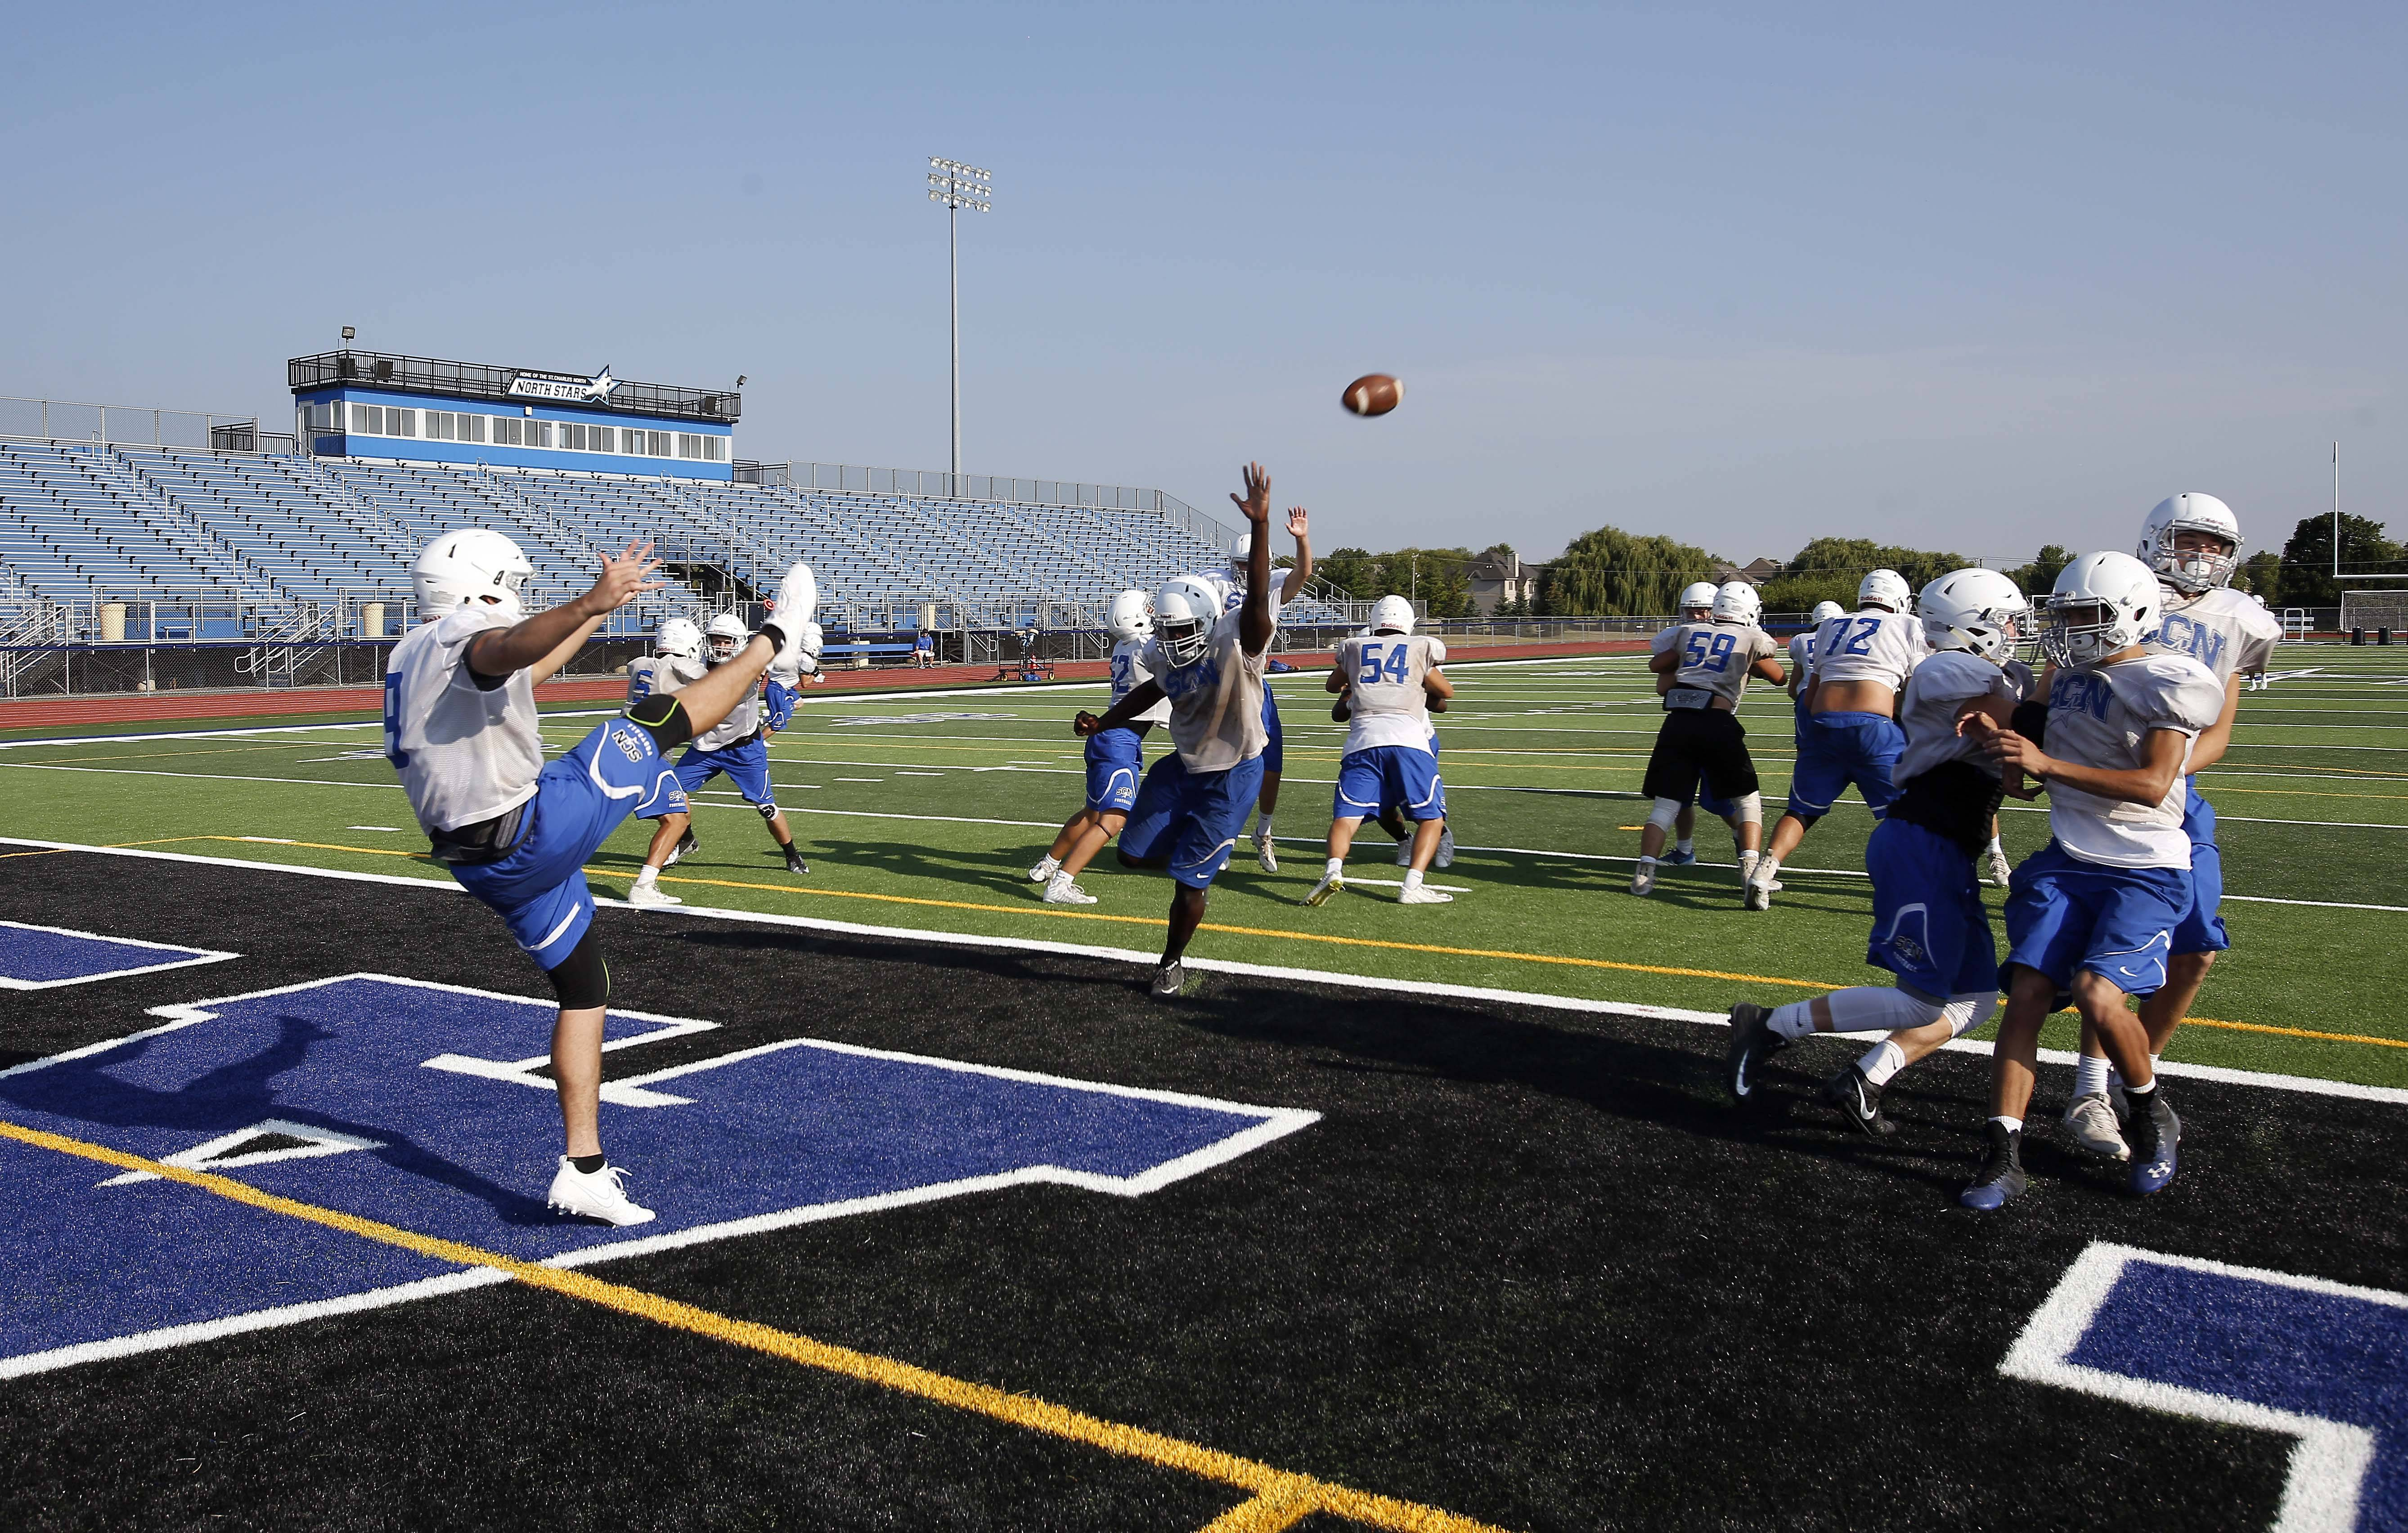 Mike Hohensee punts the football during St. Charles North football practice.